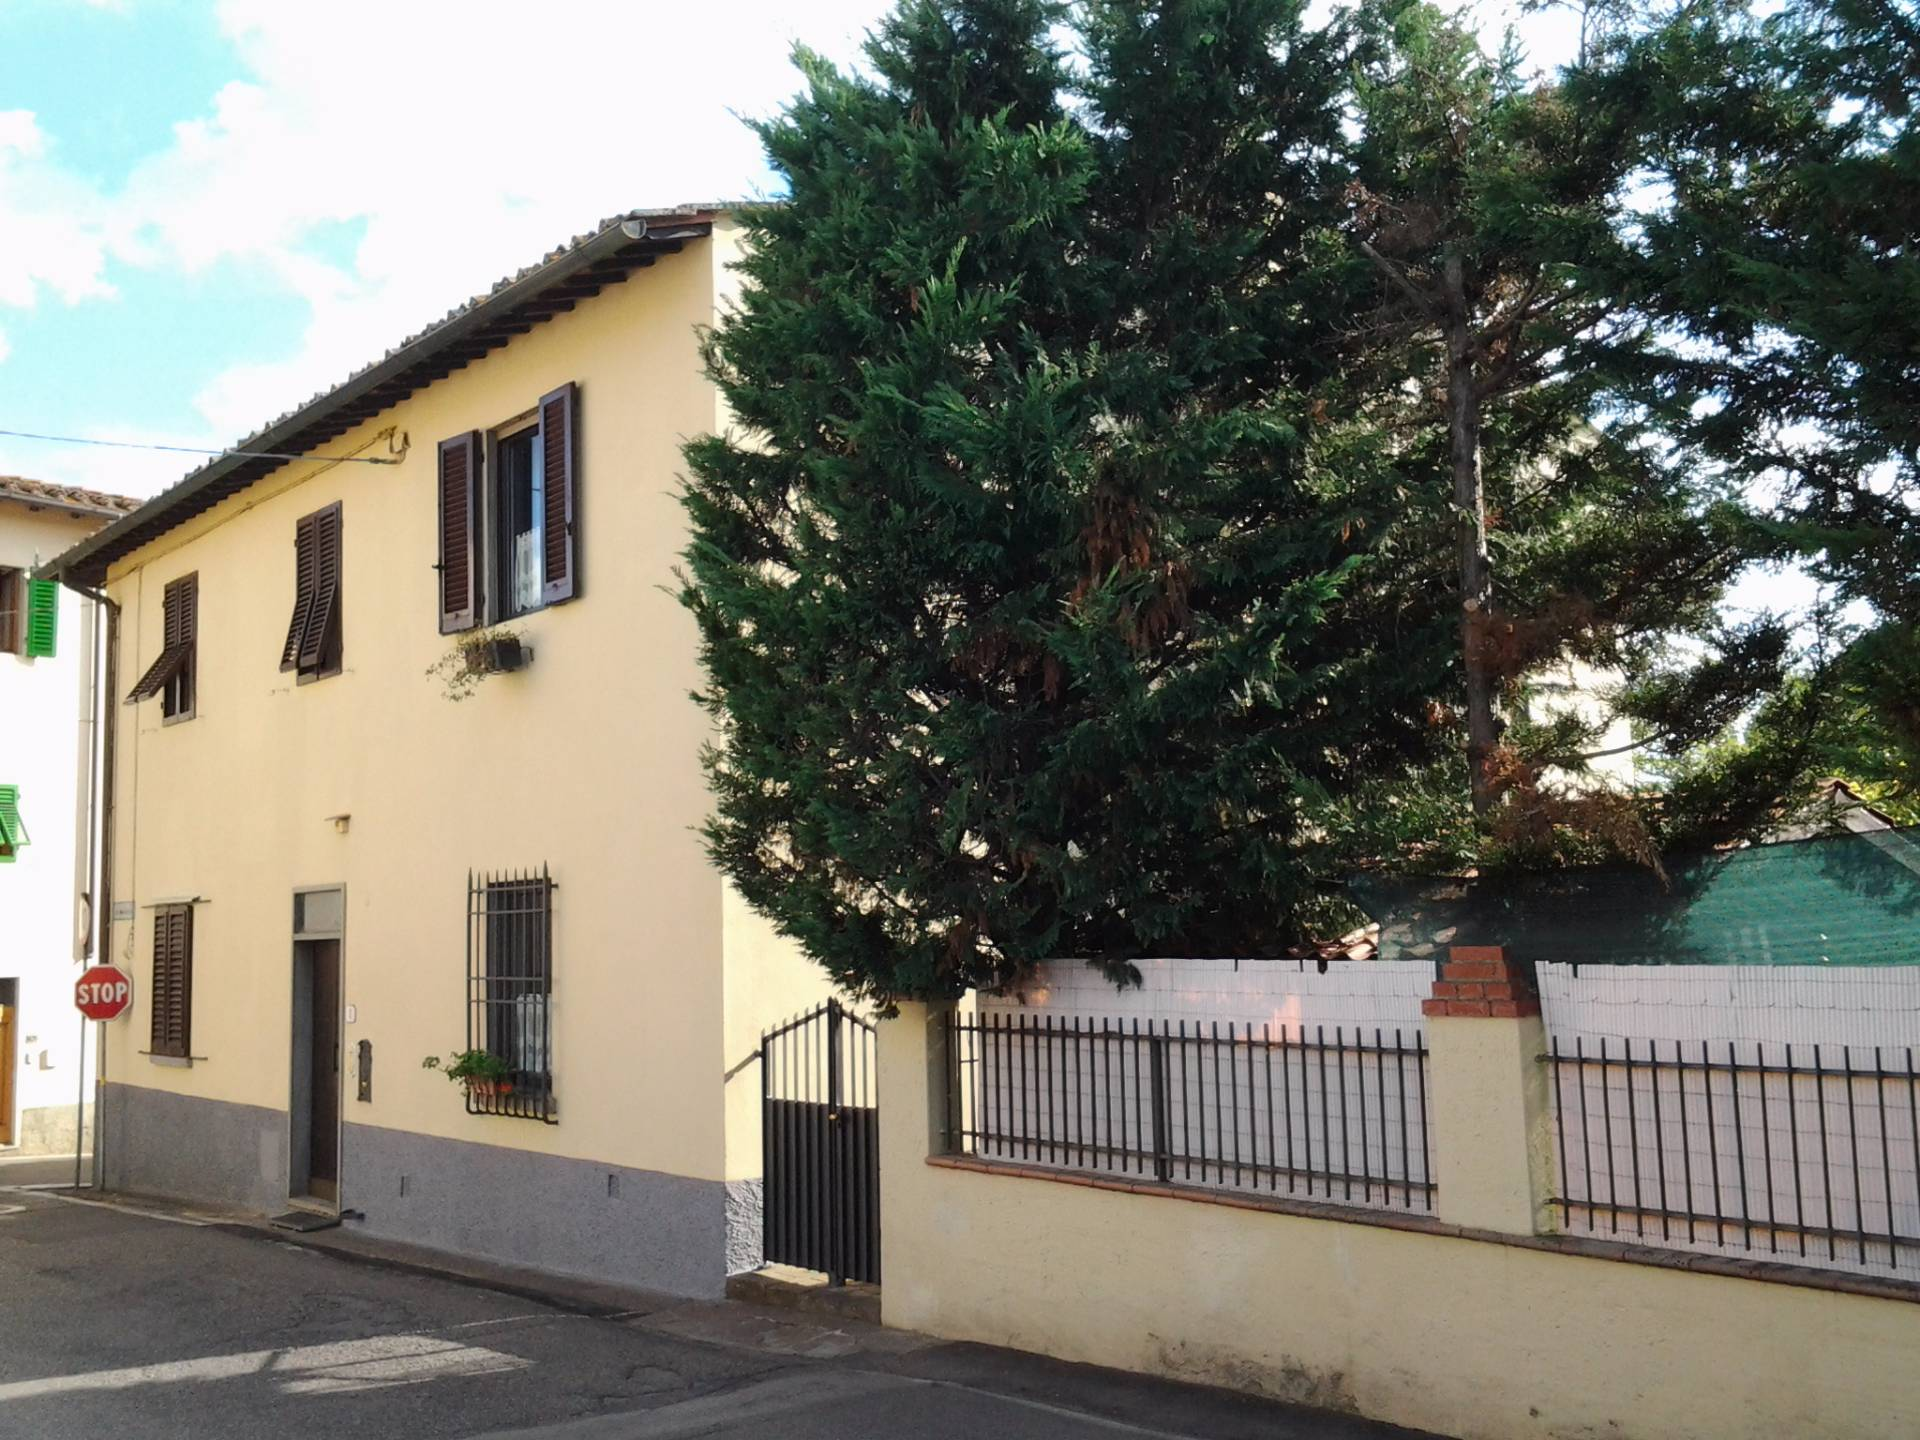 Cbi house or cottage for sale in bagno a ripoli